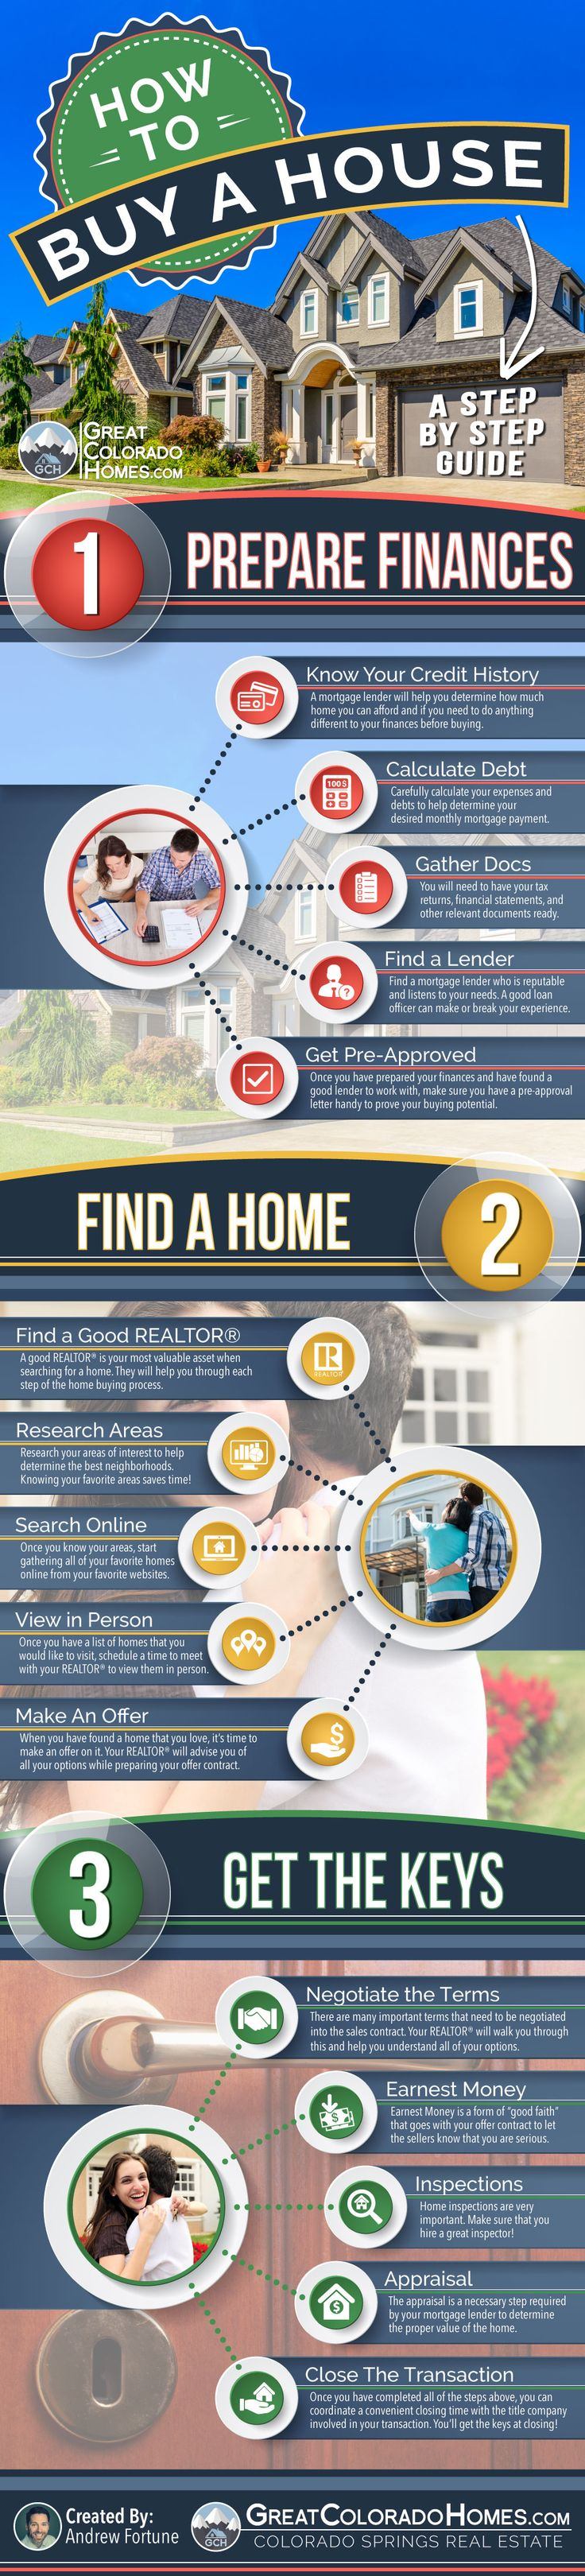 The Home Buying Process Can Seem Complicated, But It Doesn't Have To. Check Out Our Infographic and Article That Help Simplify the Process. :)